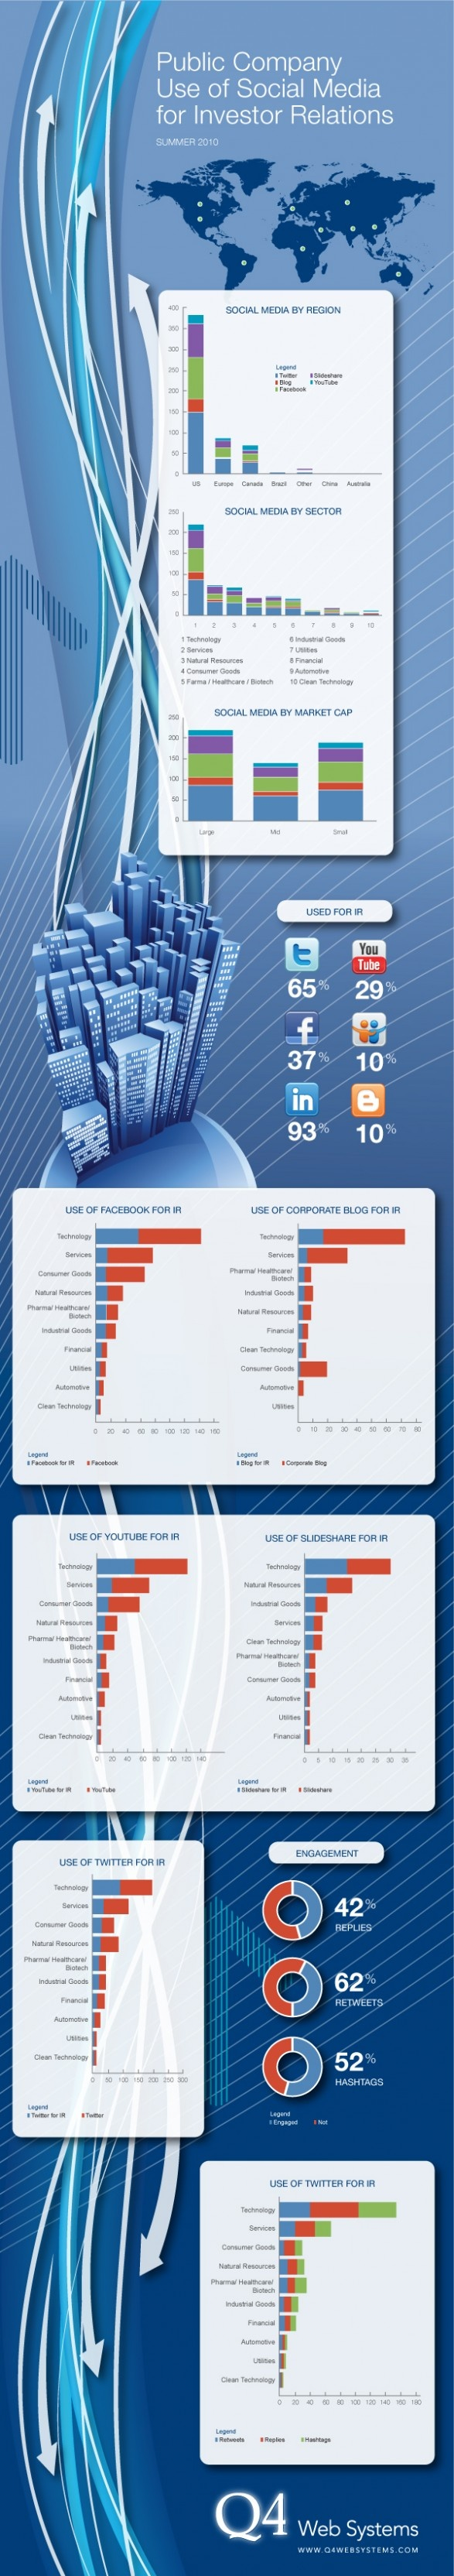 Public Company use of Social Media for Investor Relations